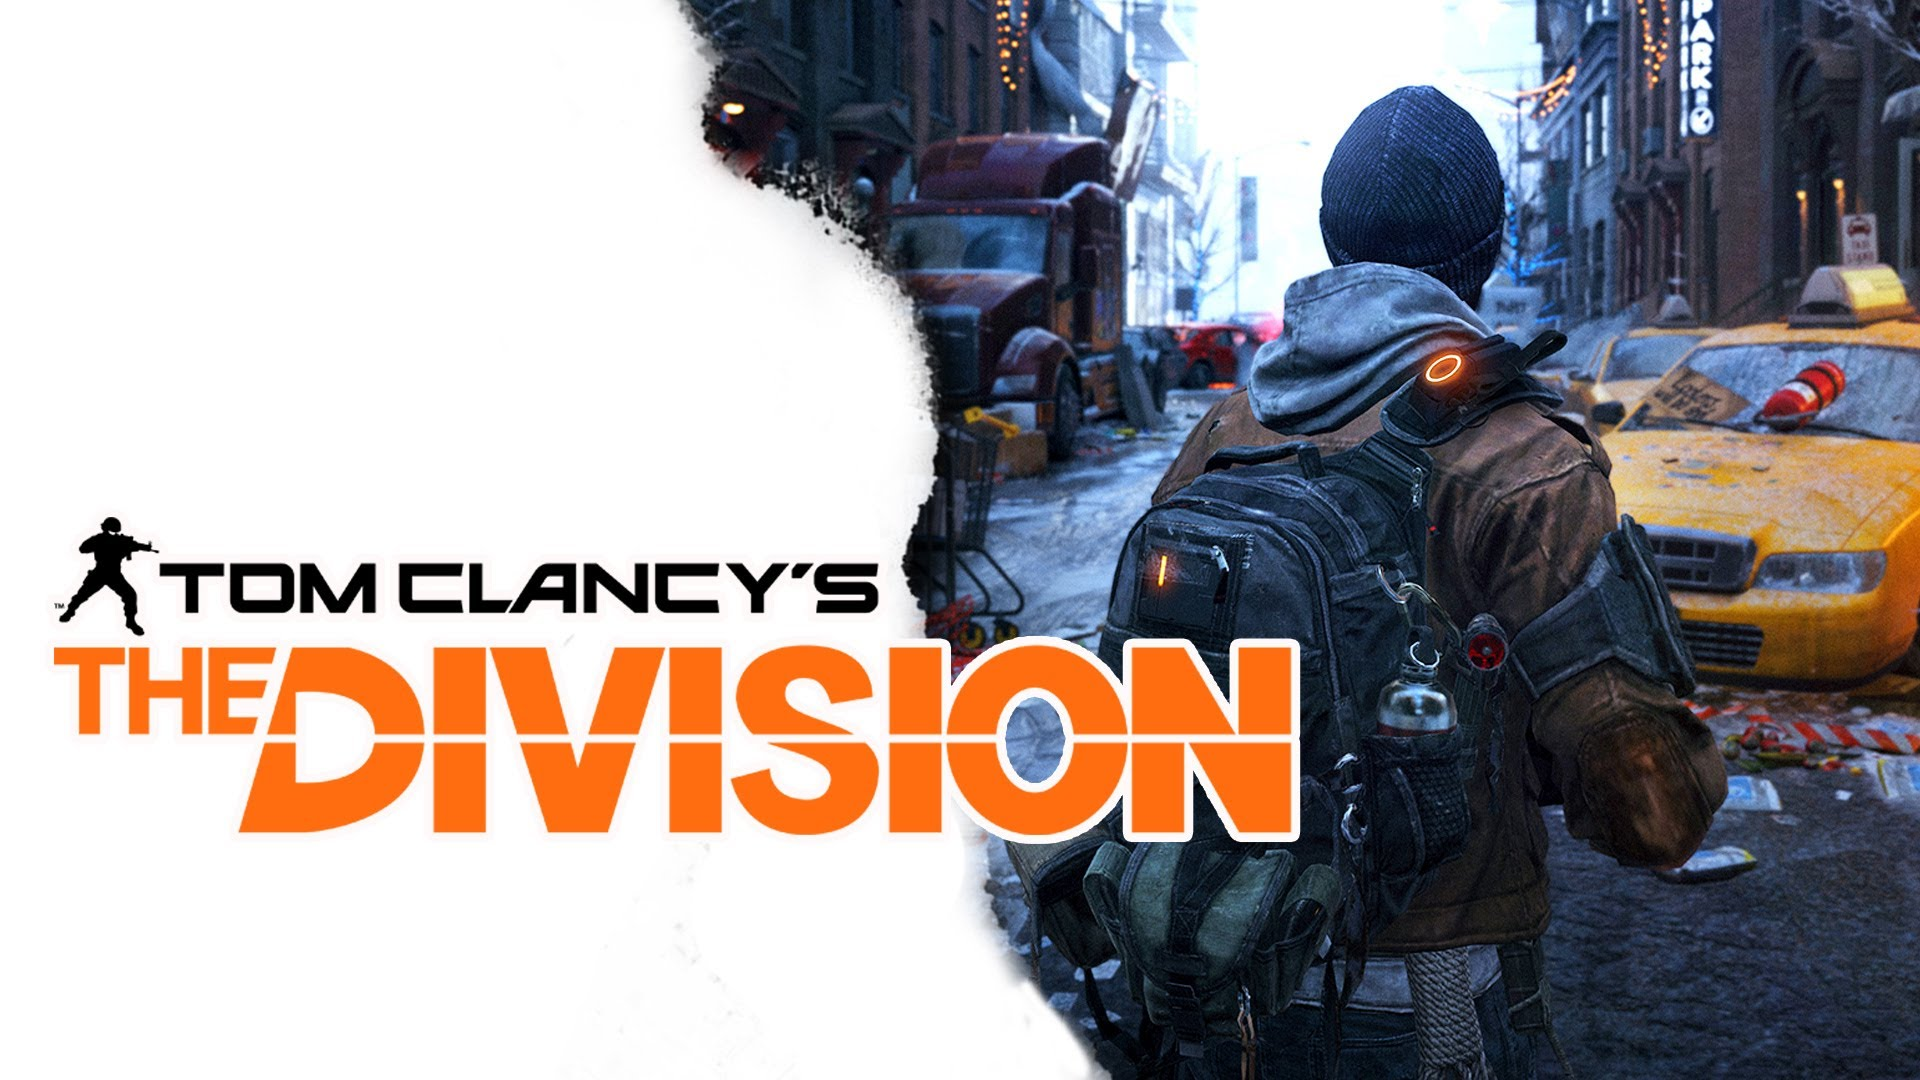 Tom Clancys The Division Wallpapers High Resolution And